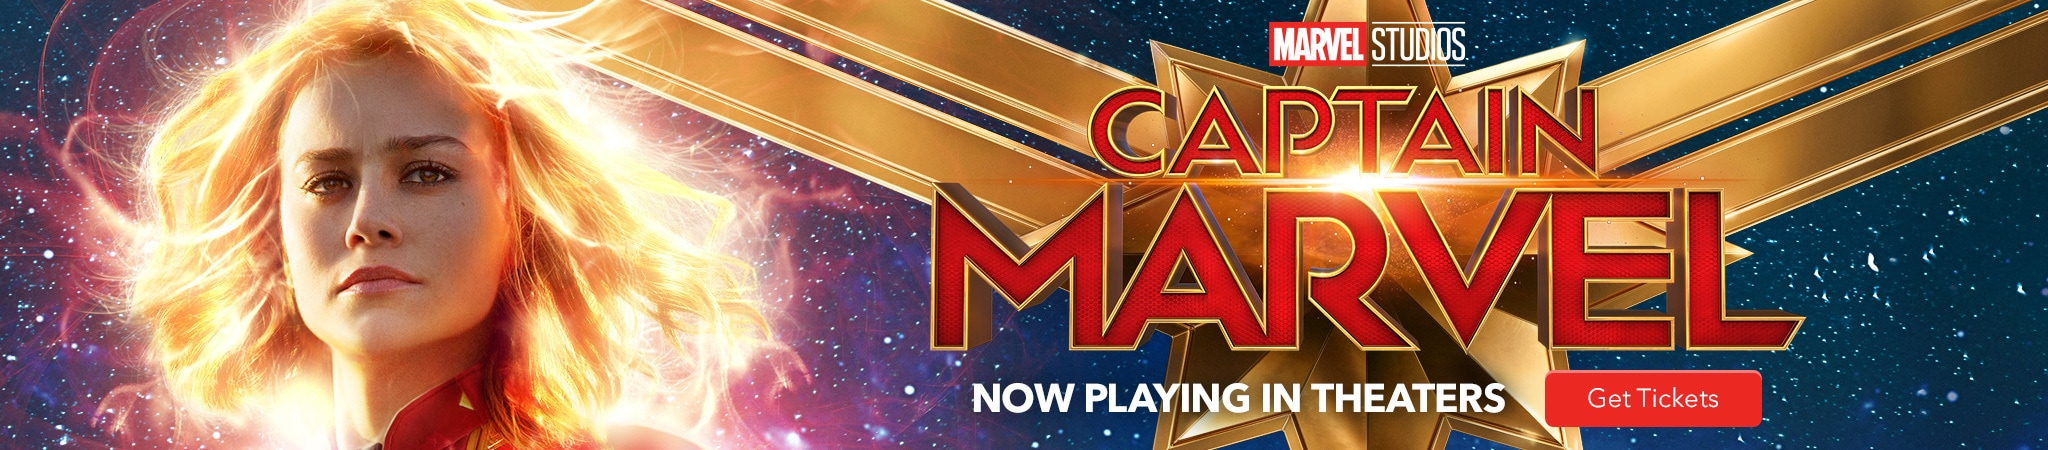 Marvel Studios Captain Marvel Now Playing In Theaters. Get Tickets